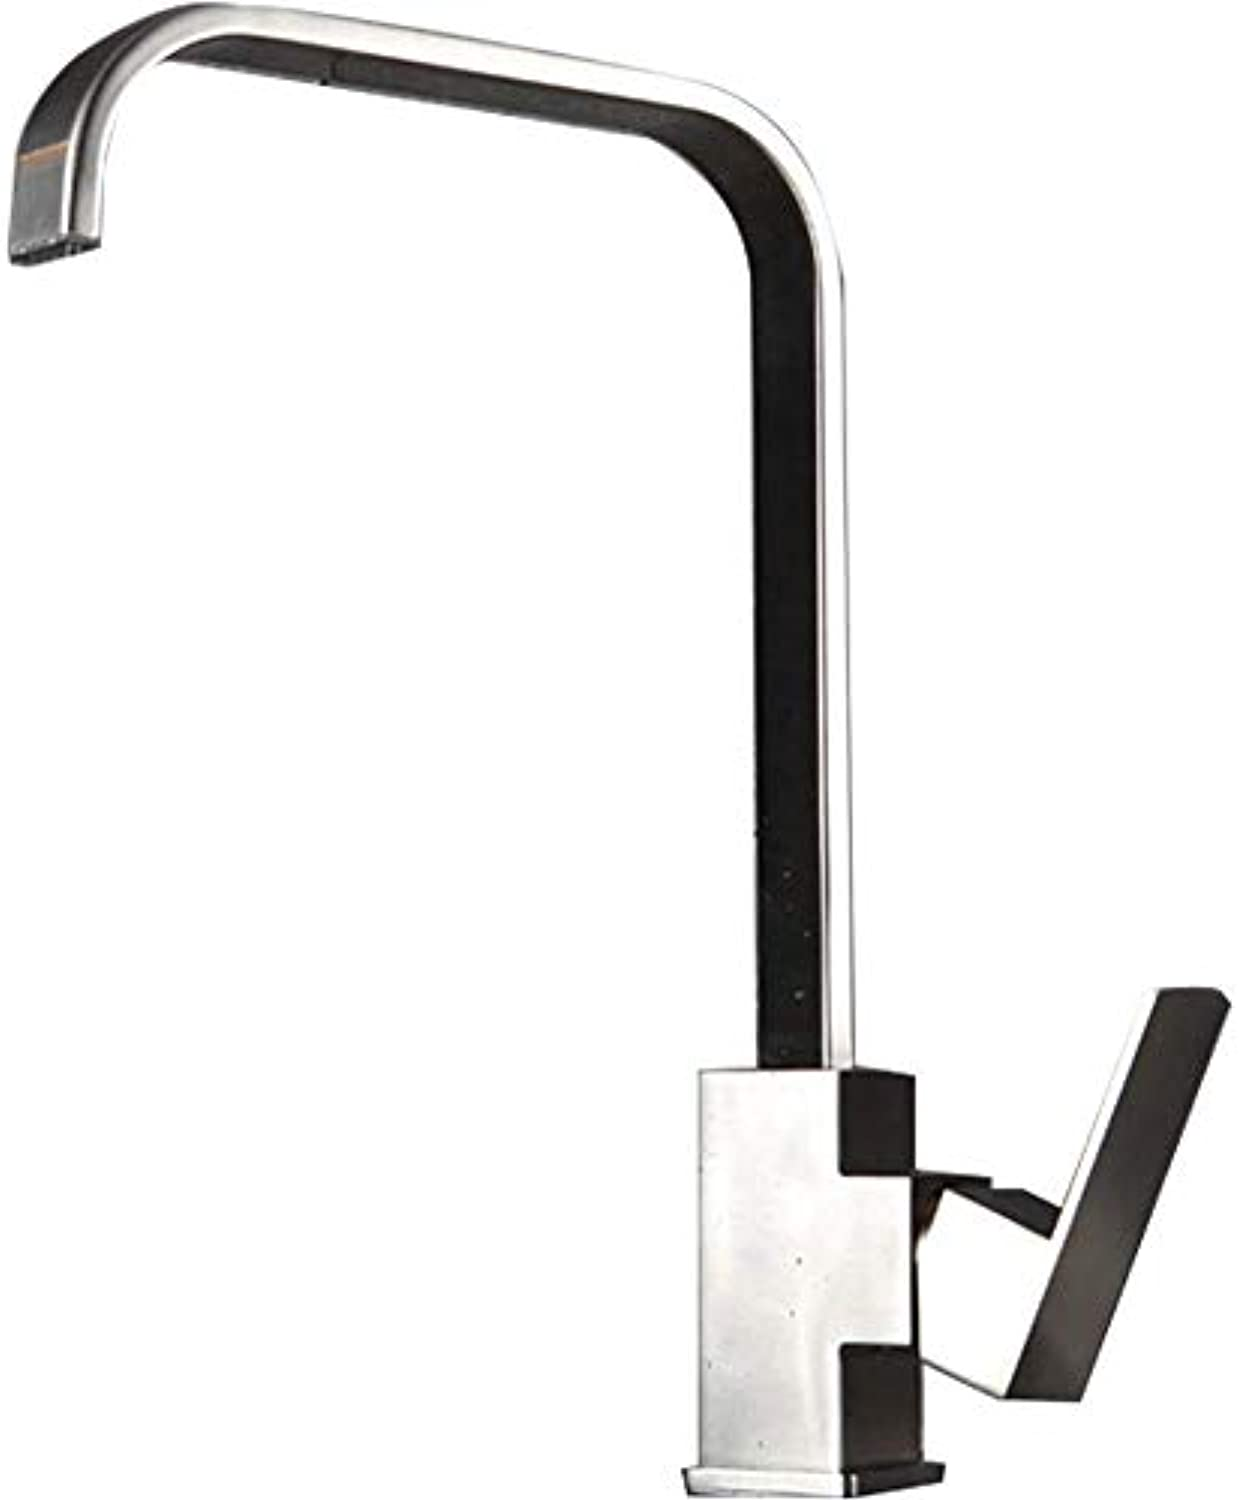 Square Kitchen Faucet Cold and Hot Water Mixer Kitchen Sink Faucet 304 Stainless Steel Square Single Handle Can Rotate 7-Type Lead-Free